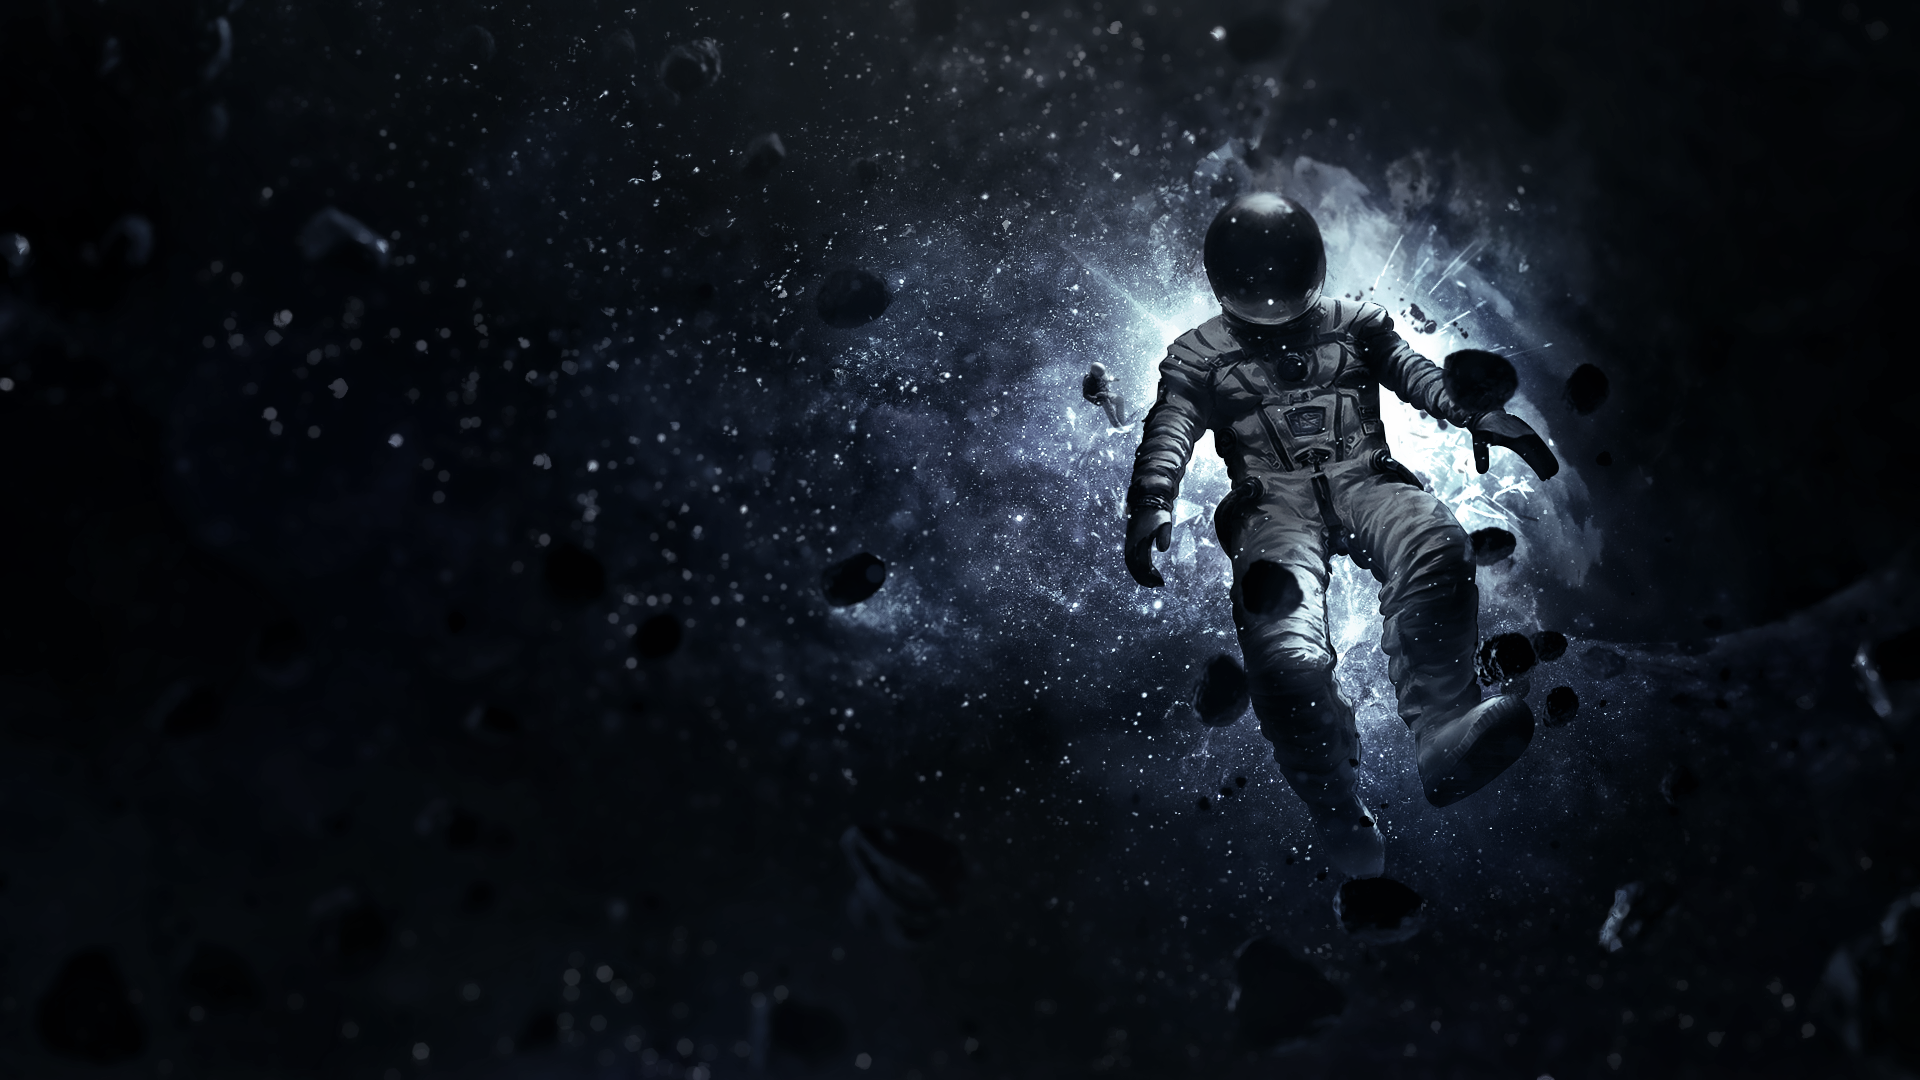 Imgur The Most Awesome Images On The Internet Astronaut Wallpaper Space Painting Space Artwork